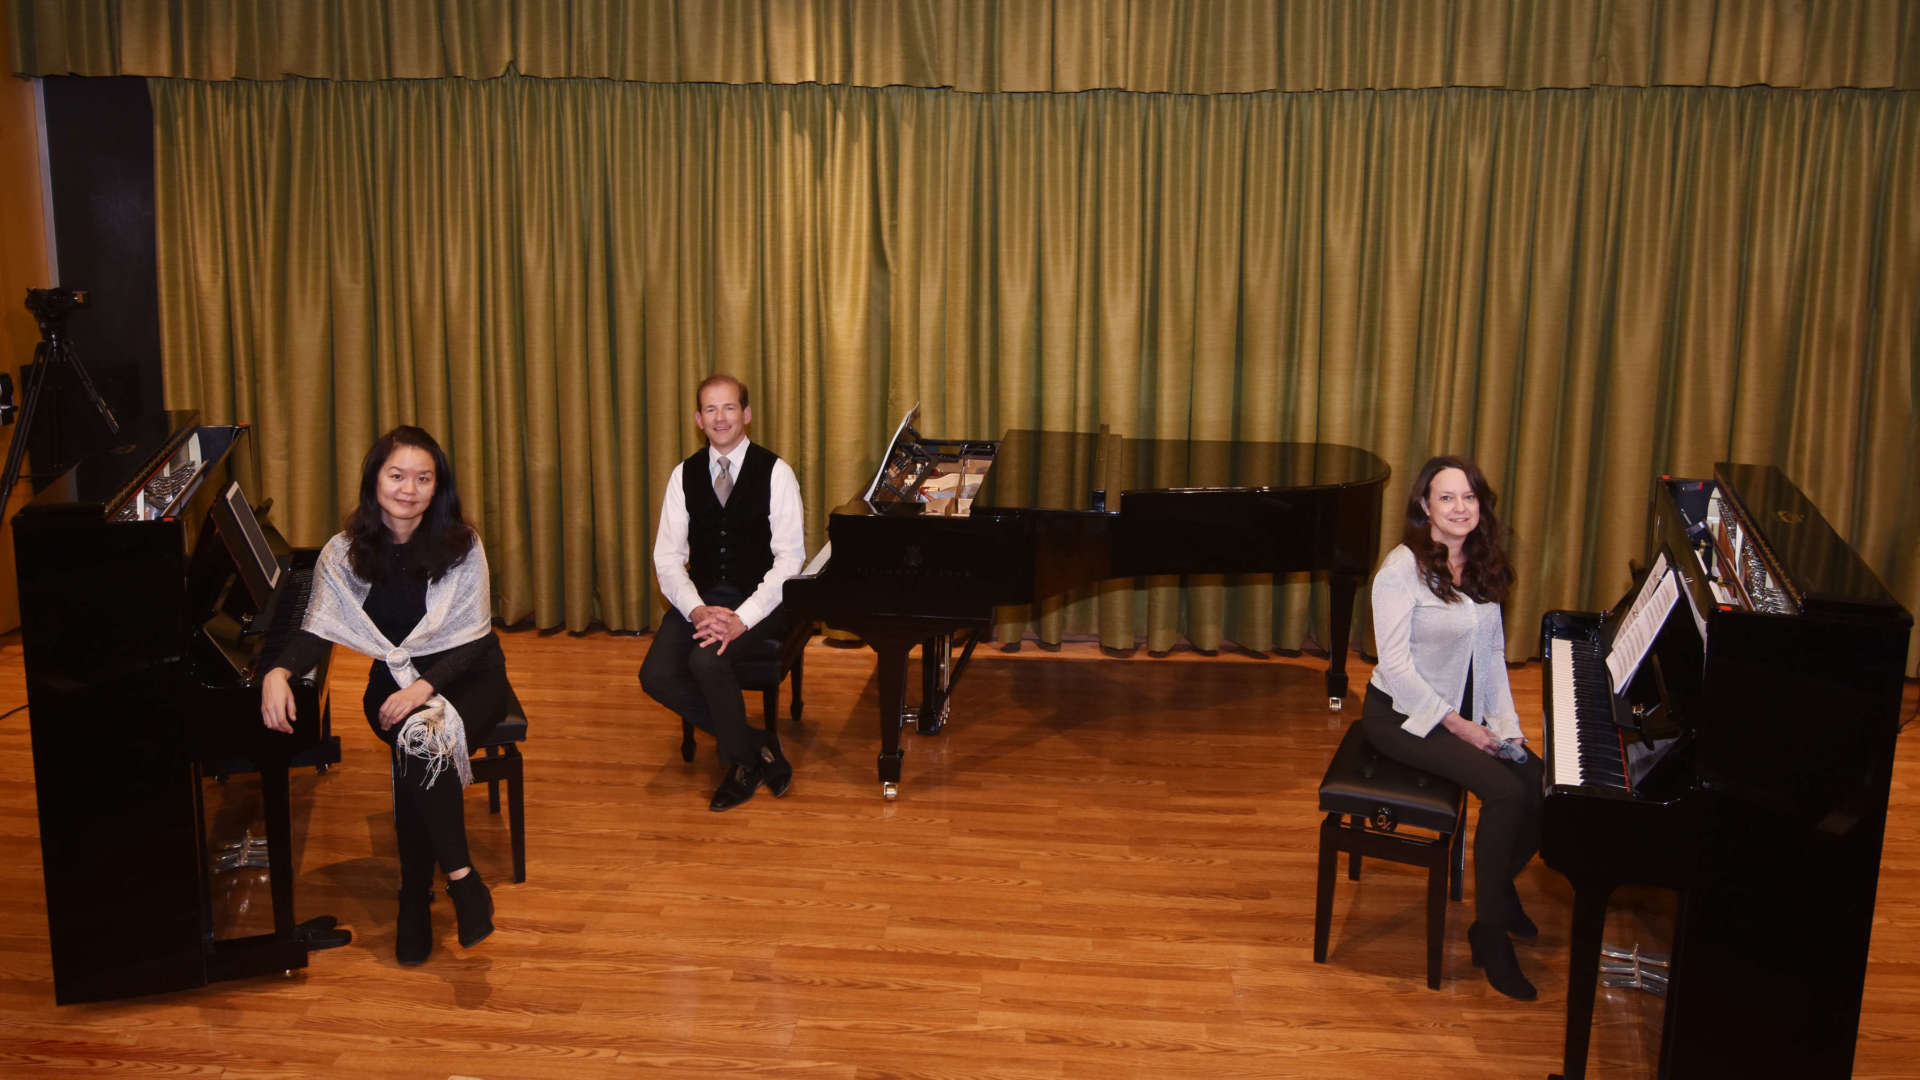 Pictured with new Steinway-designed Boston UP-126 Performance Edition pianos and a Steinway Model B Classic Grand Piano are (l. to r.) Dr. Yu-Hsuan Liao, director of keyboard studies, Dr. Scott Beard, provost, and Dr. Laura Renninger, dean, Center for Teaching and Learning.